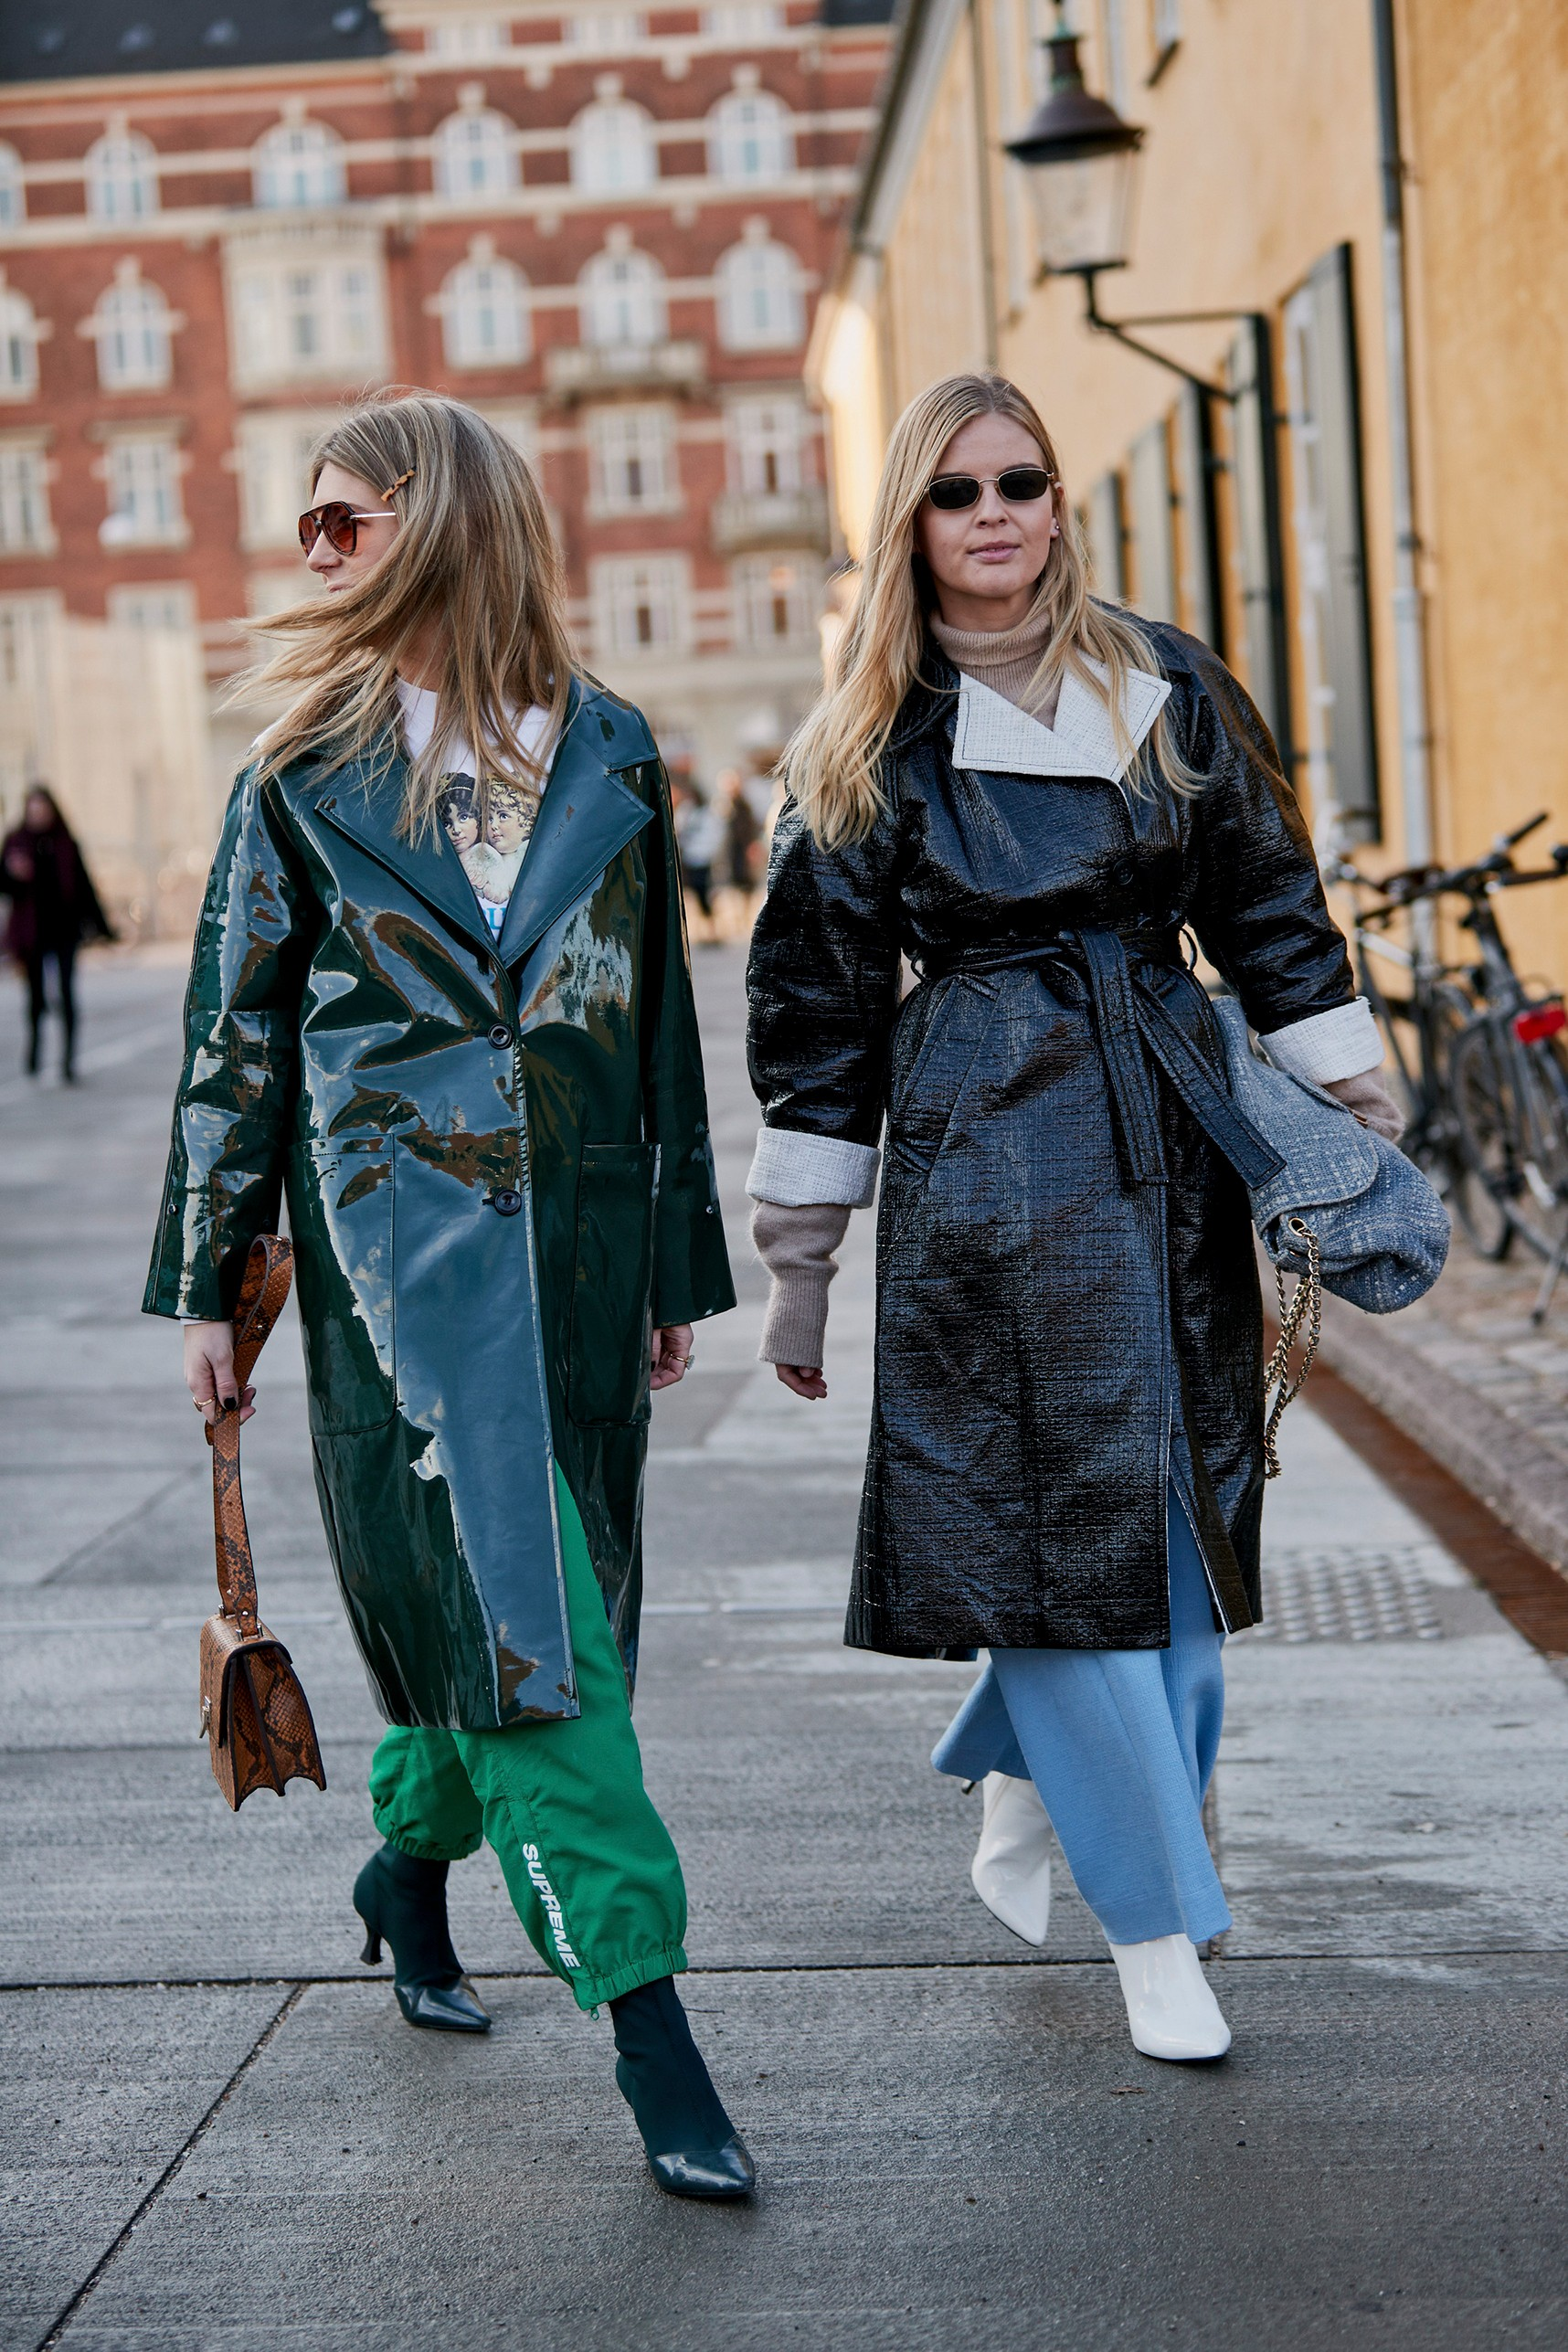 12 Of The Best Items On Sale At Net-A-Porter